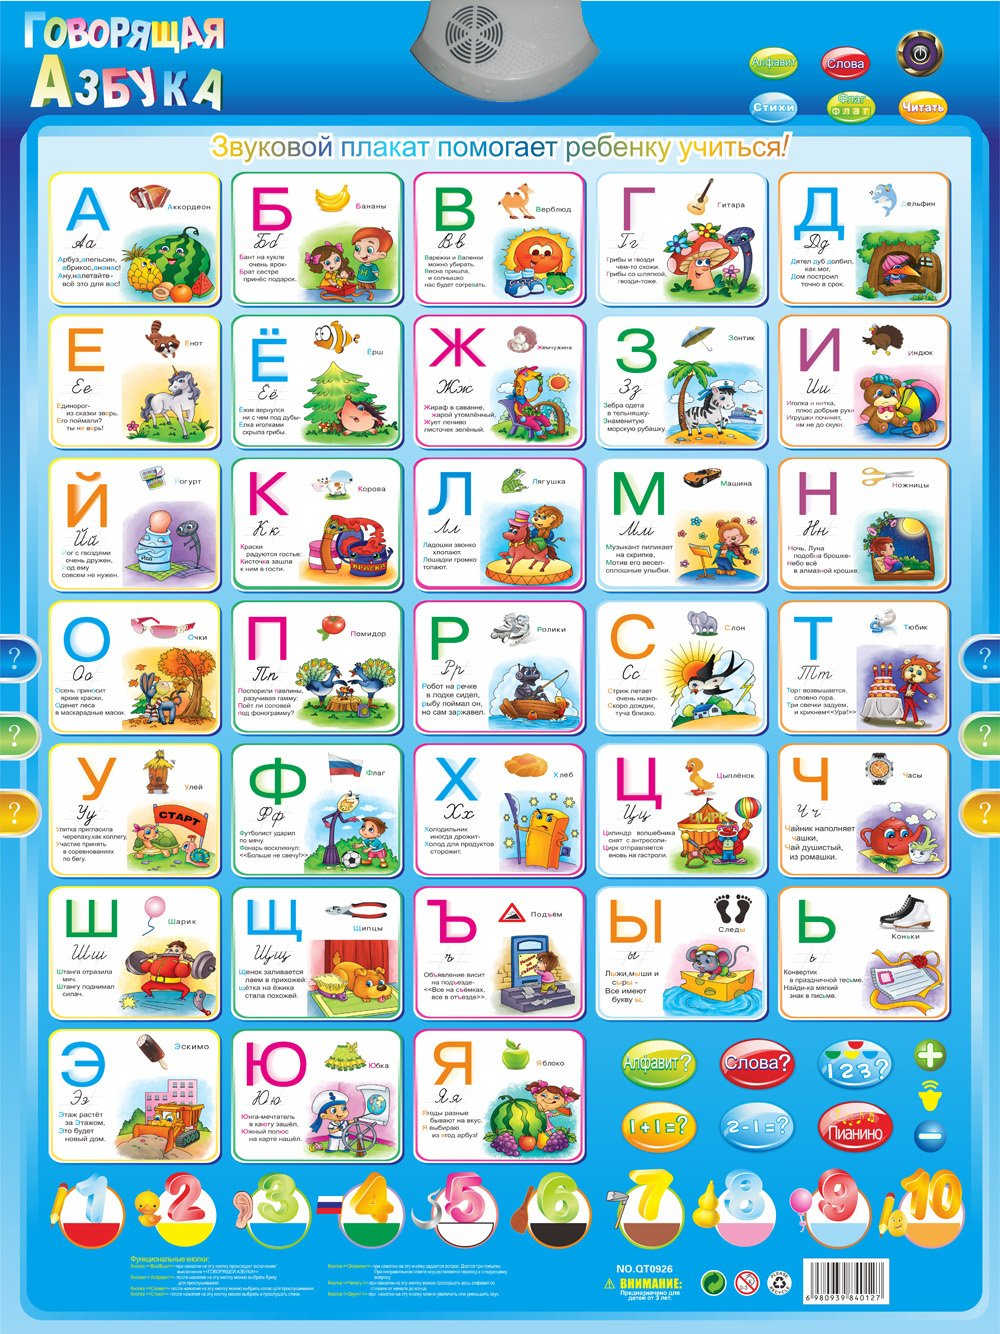 Pulaisen Russian Phonetic Alphanumeric Letter with Voice - Learning Charts with Speech - Russian Educational - Learning Toy - Home Decor(Russian voice)